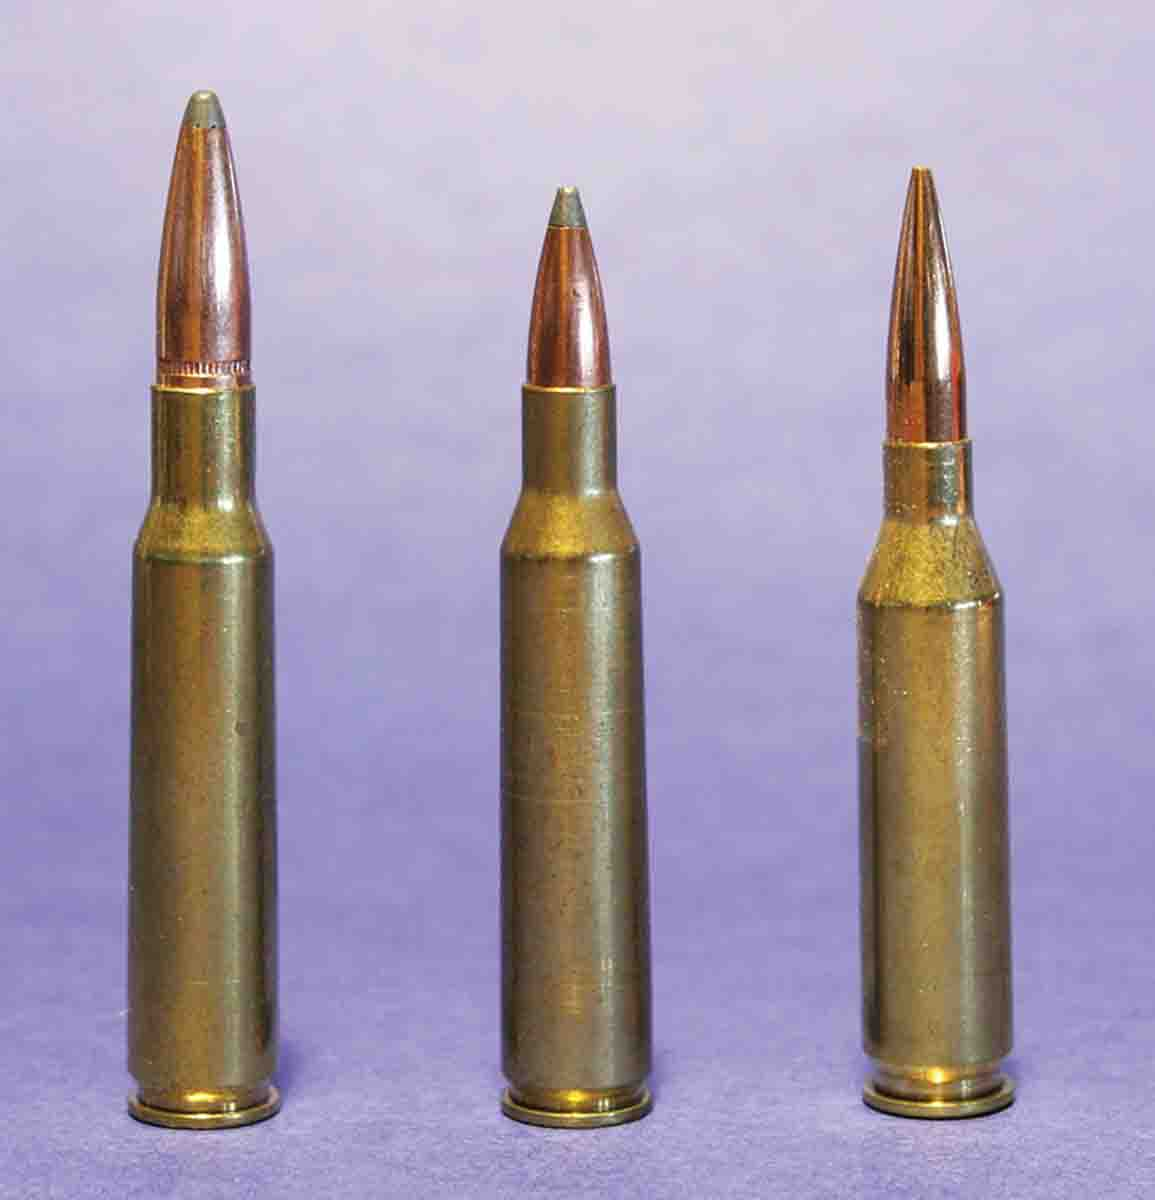 The .257 Roberts (center) introduced by Remington in 1934 was basically the 7x57 Mauser (left) necked down. The .257's heyday lasted only until 1955, when Winchester introduced the .243 (right).